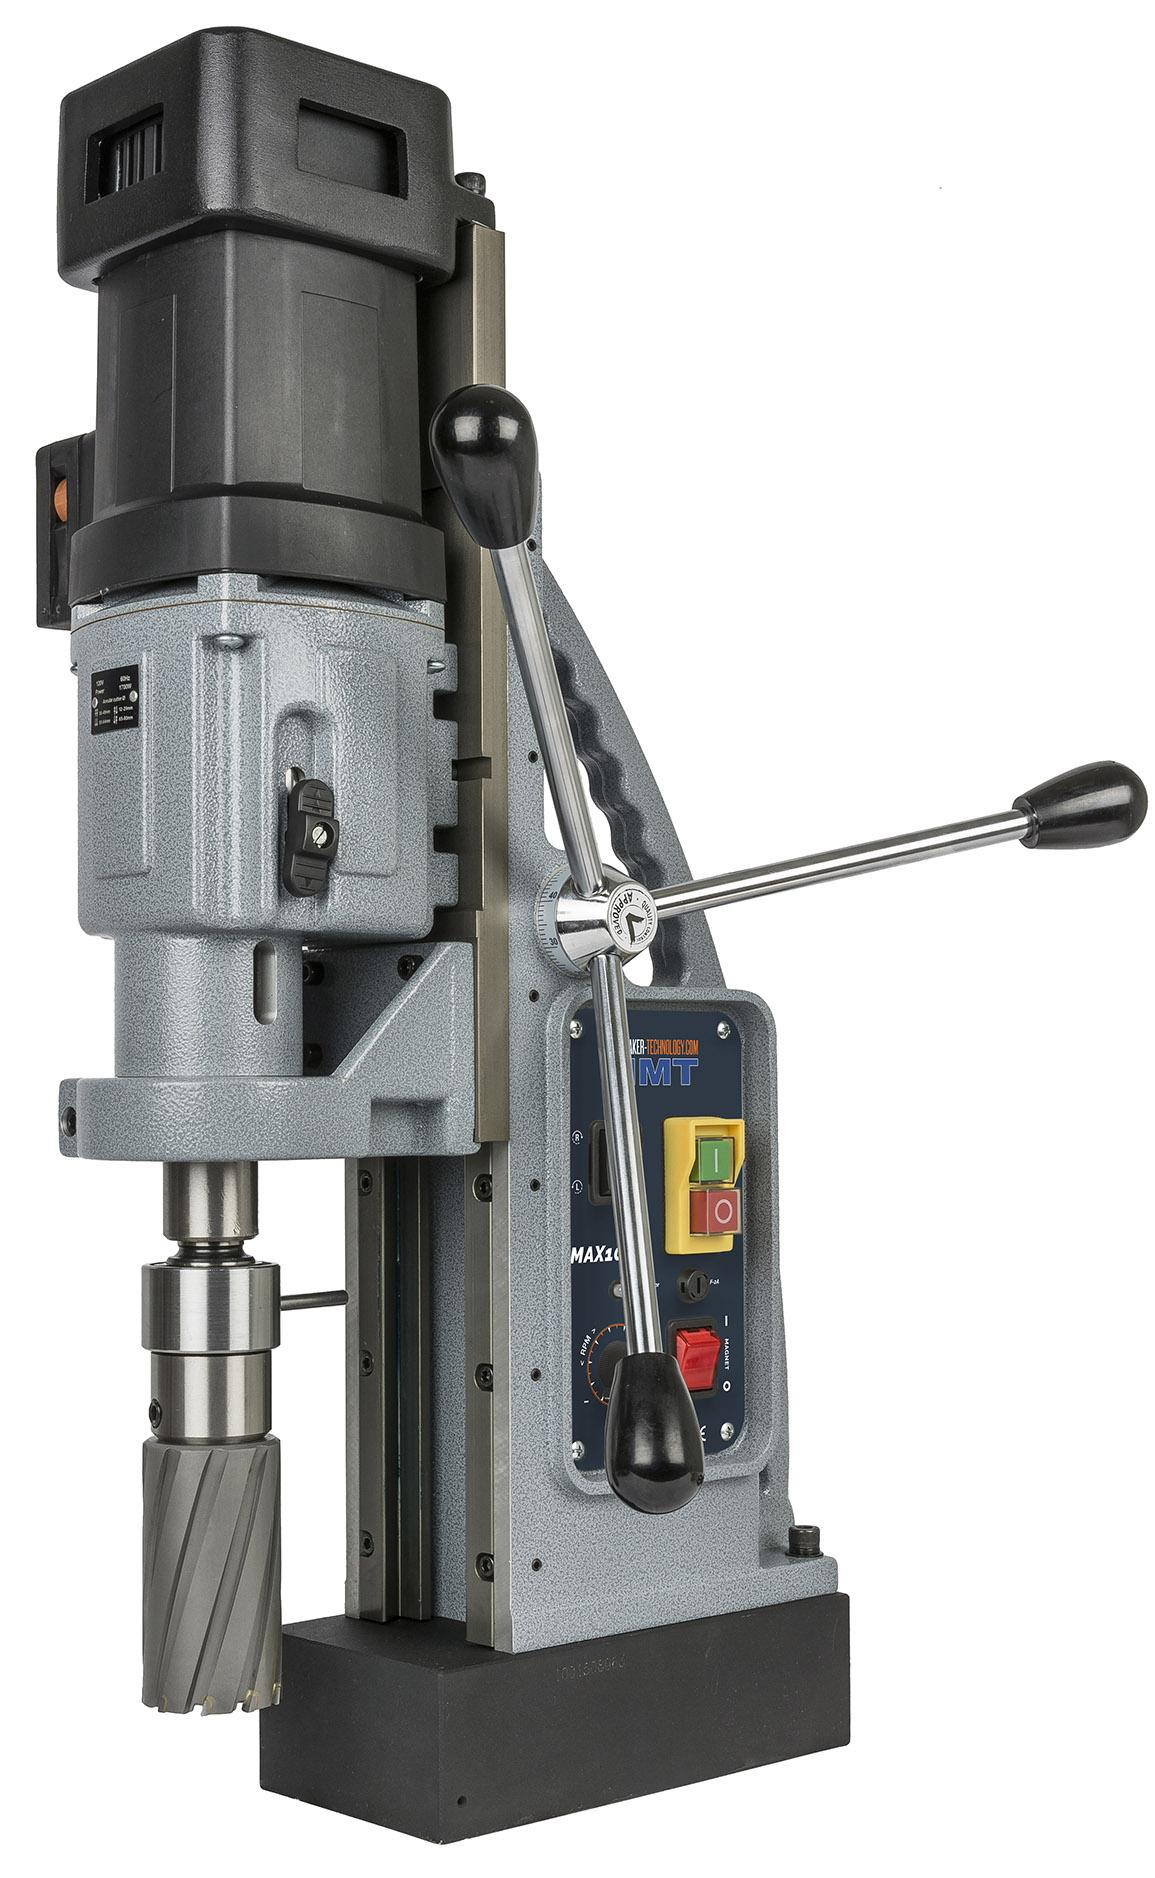 803070-0001  HMT Max-100T Tapping Magnet Drill 110 Volt - with FREE TCT Cutter Set